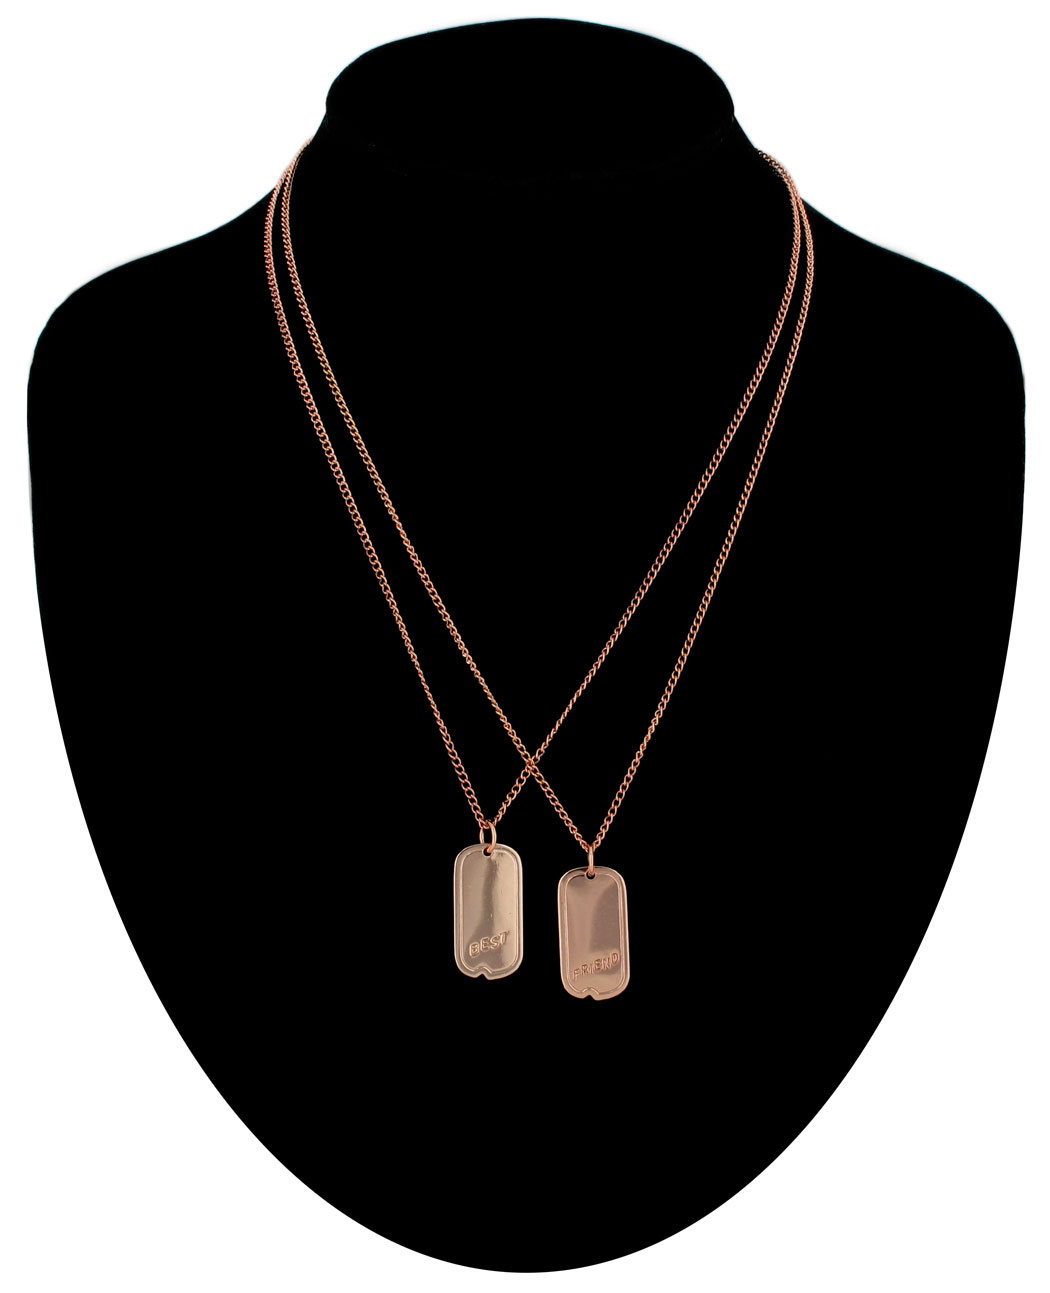 Ky & Co Pendant Bff Necklace Set Friendship Dog Tag Best Friends Rose Gold Tone Thumbnail 1